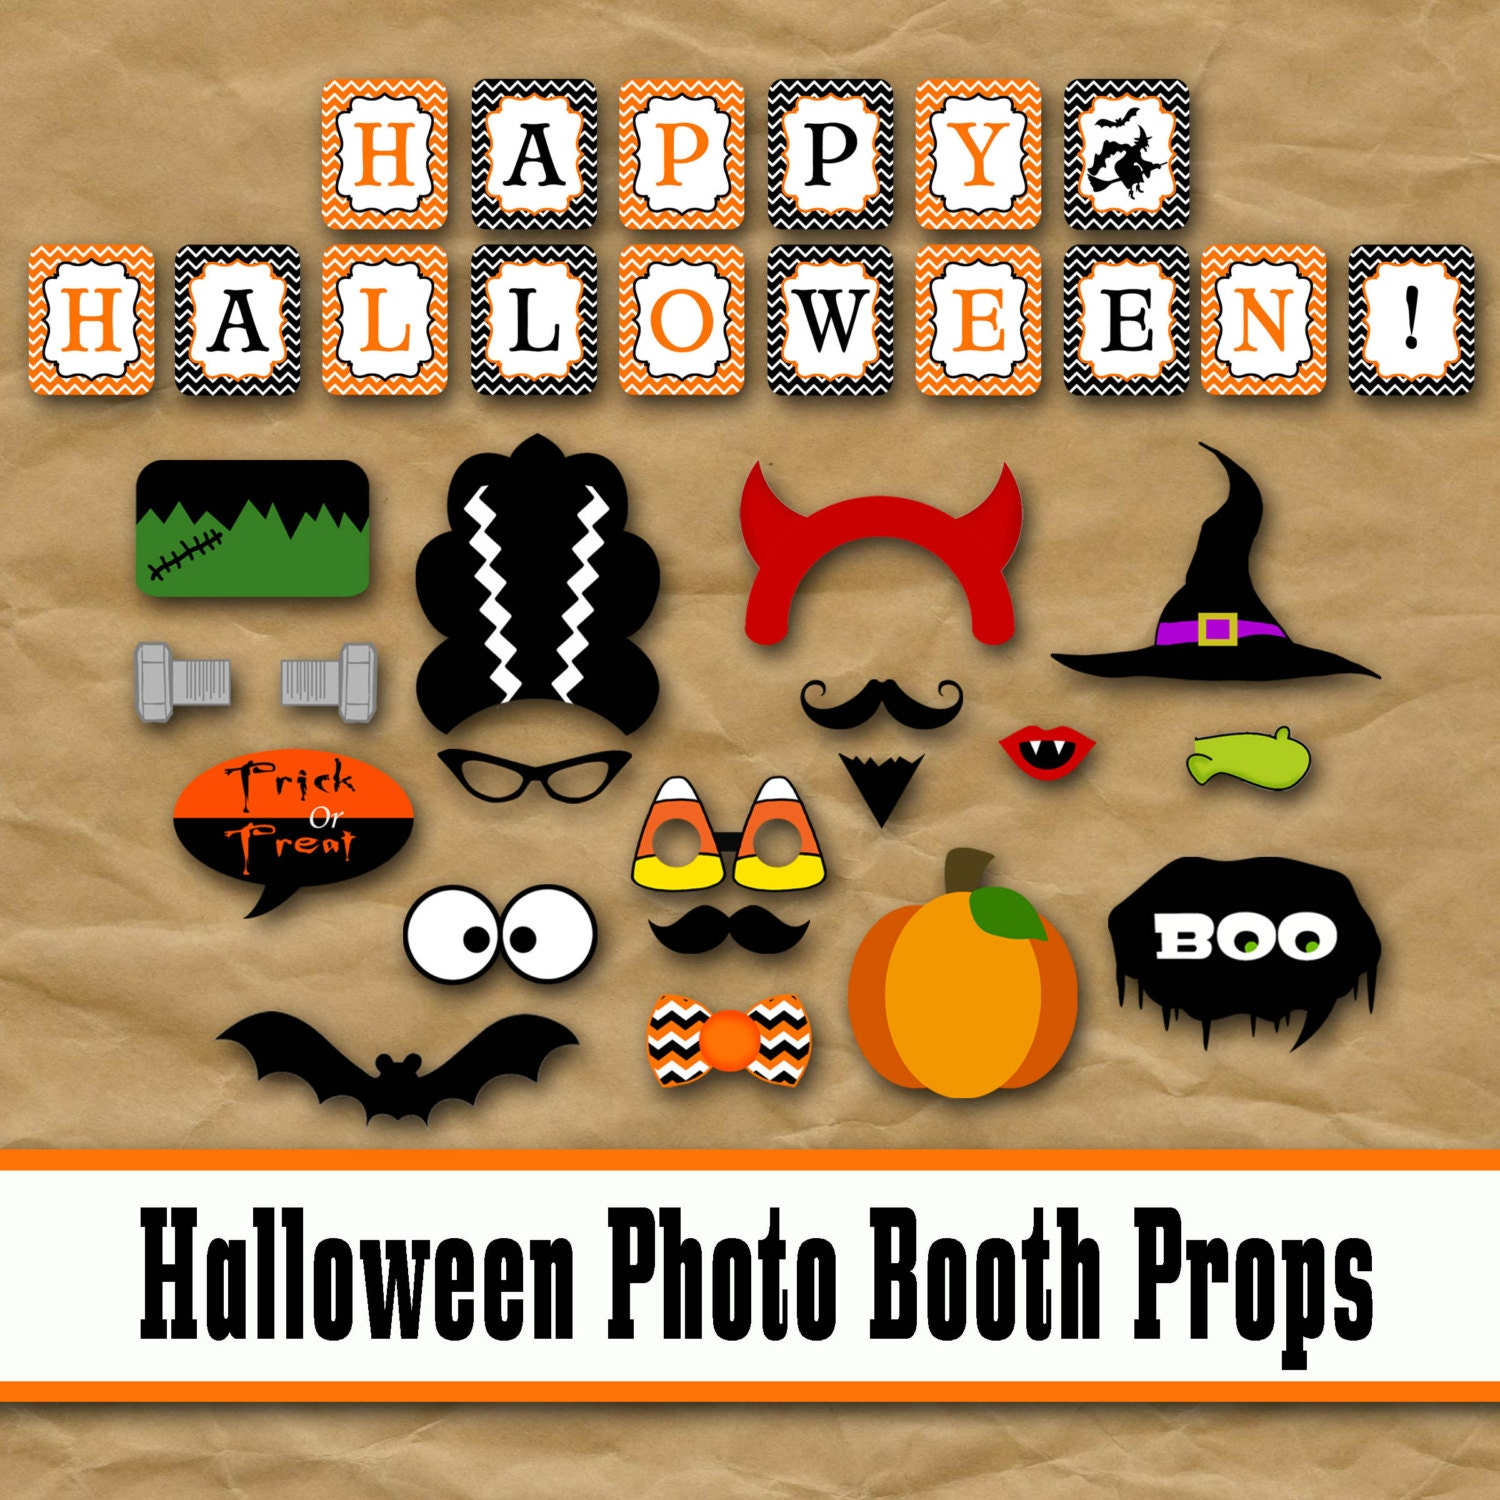 This is an image of Peaceful Halloween Photo Booth Props Printable Free